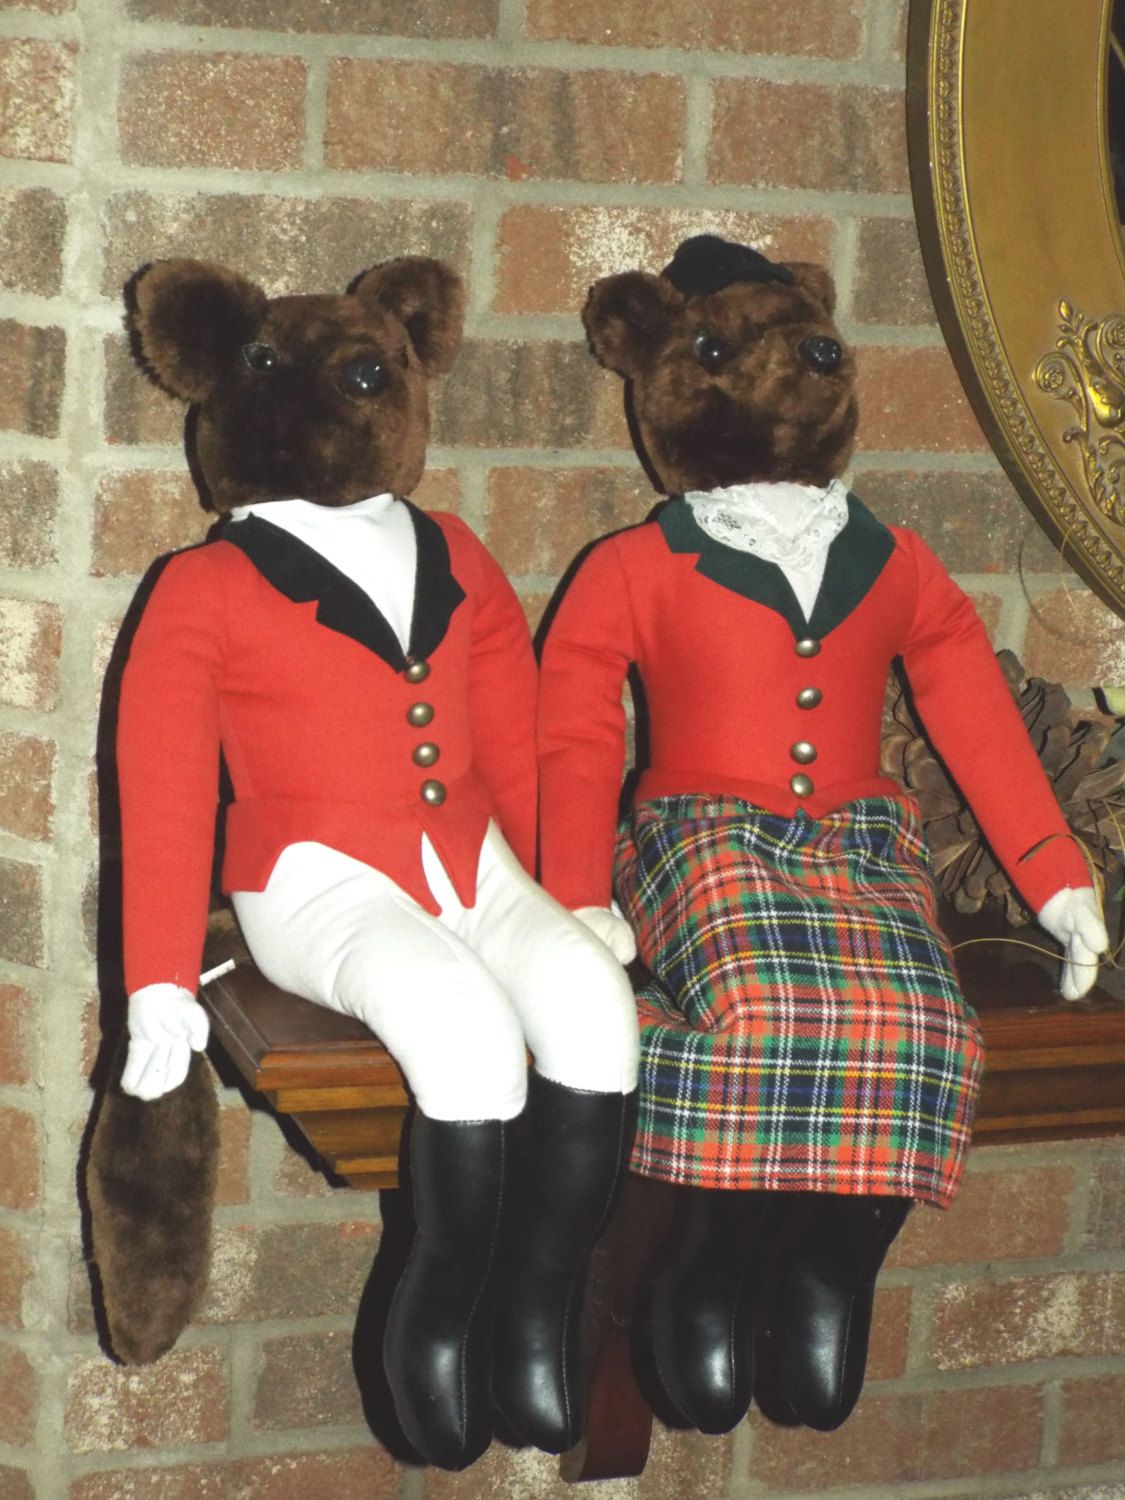 Mr And Mrs Fox Mantle Sitters Dolls